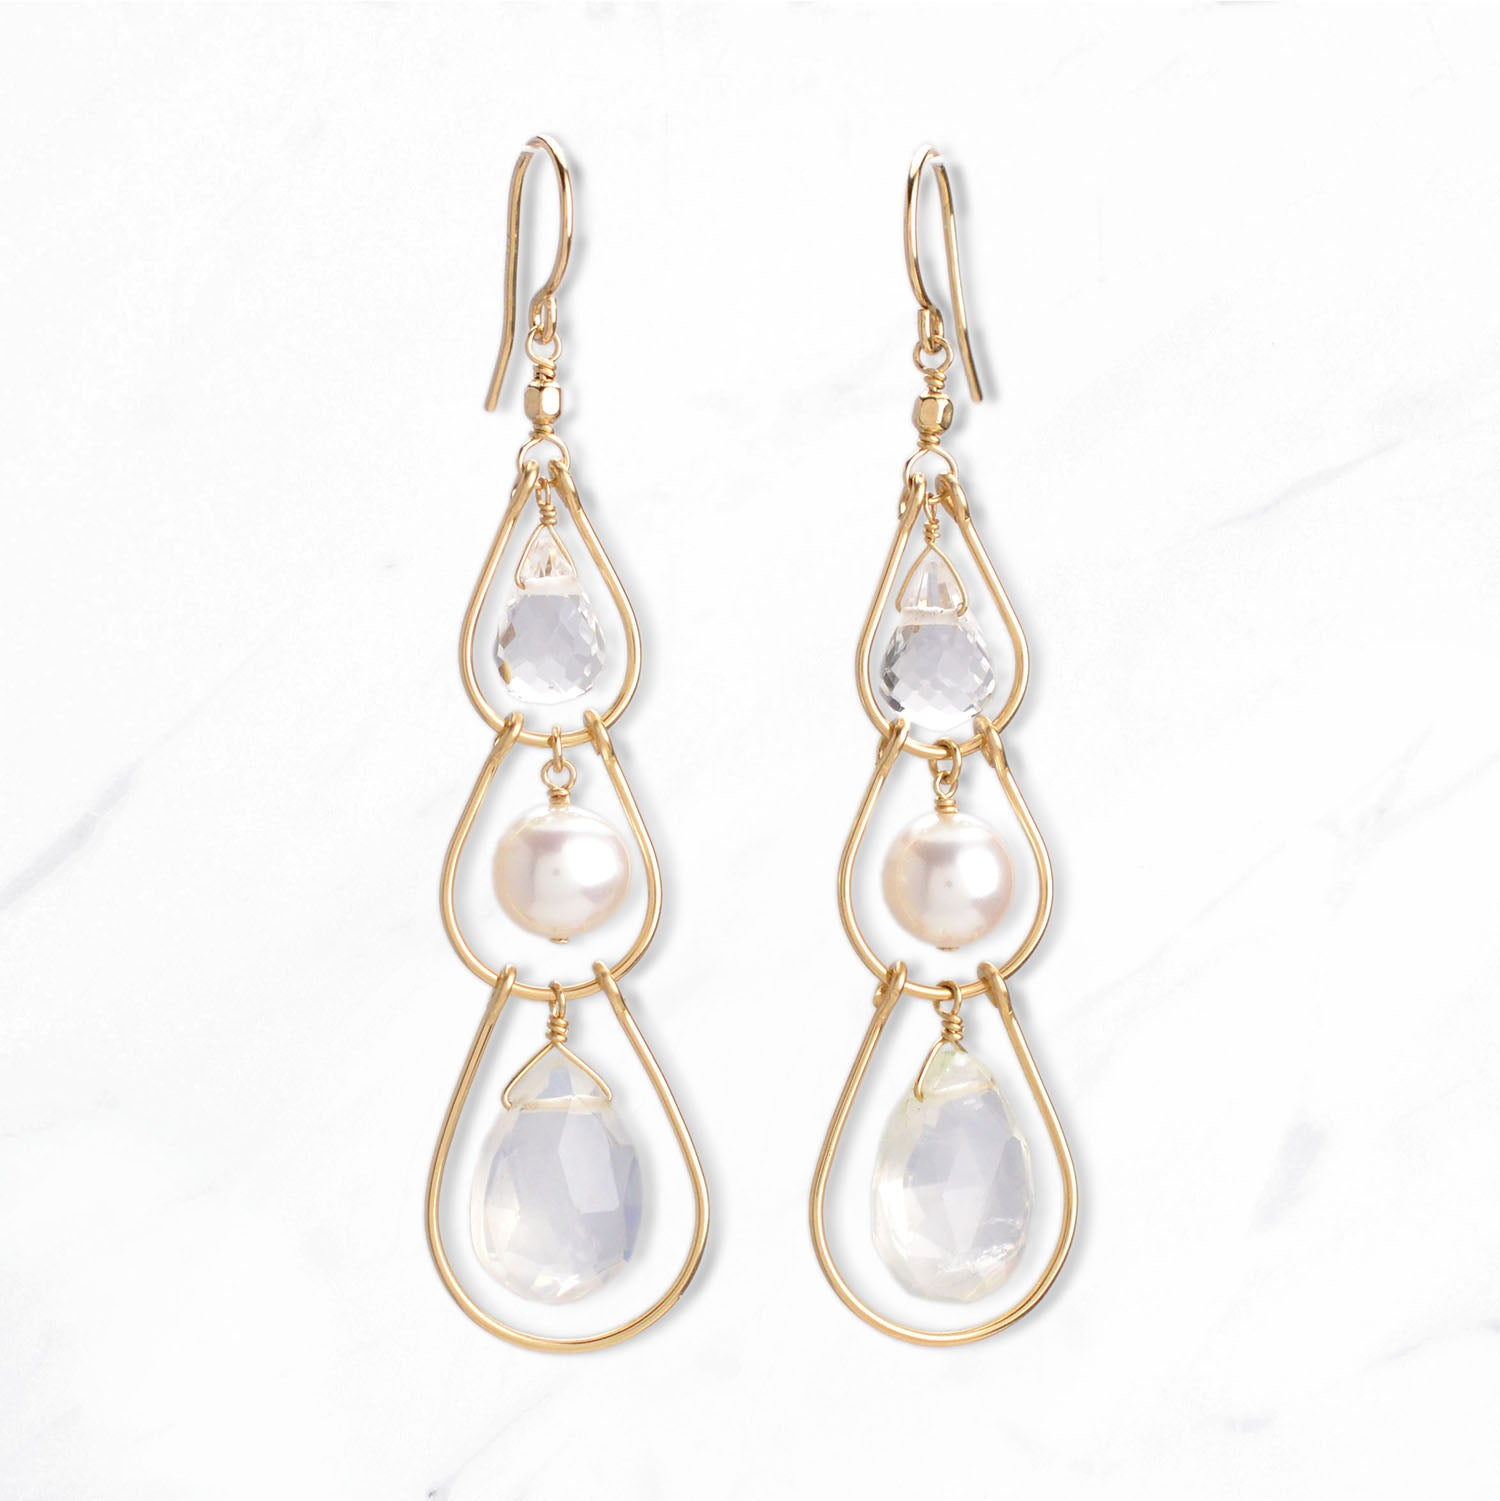 Gemstone & Pearl Triple Layer Earrings